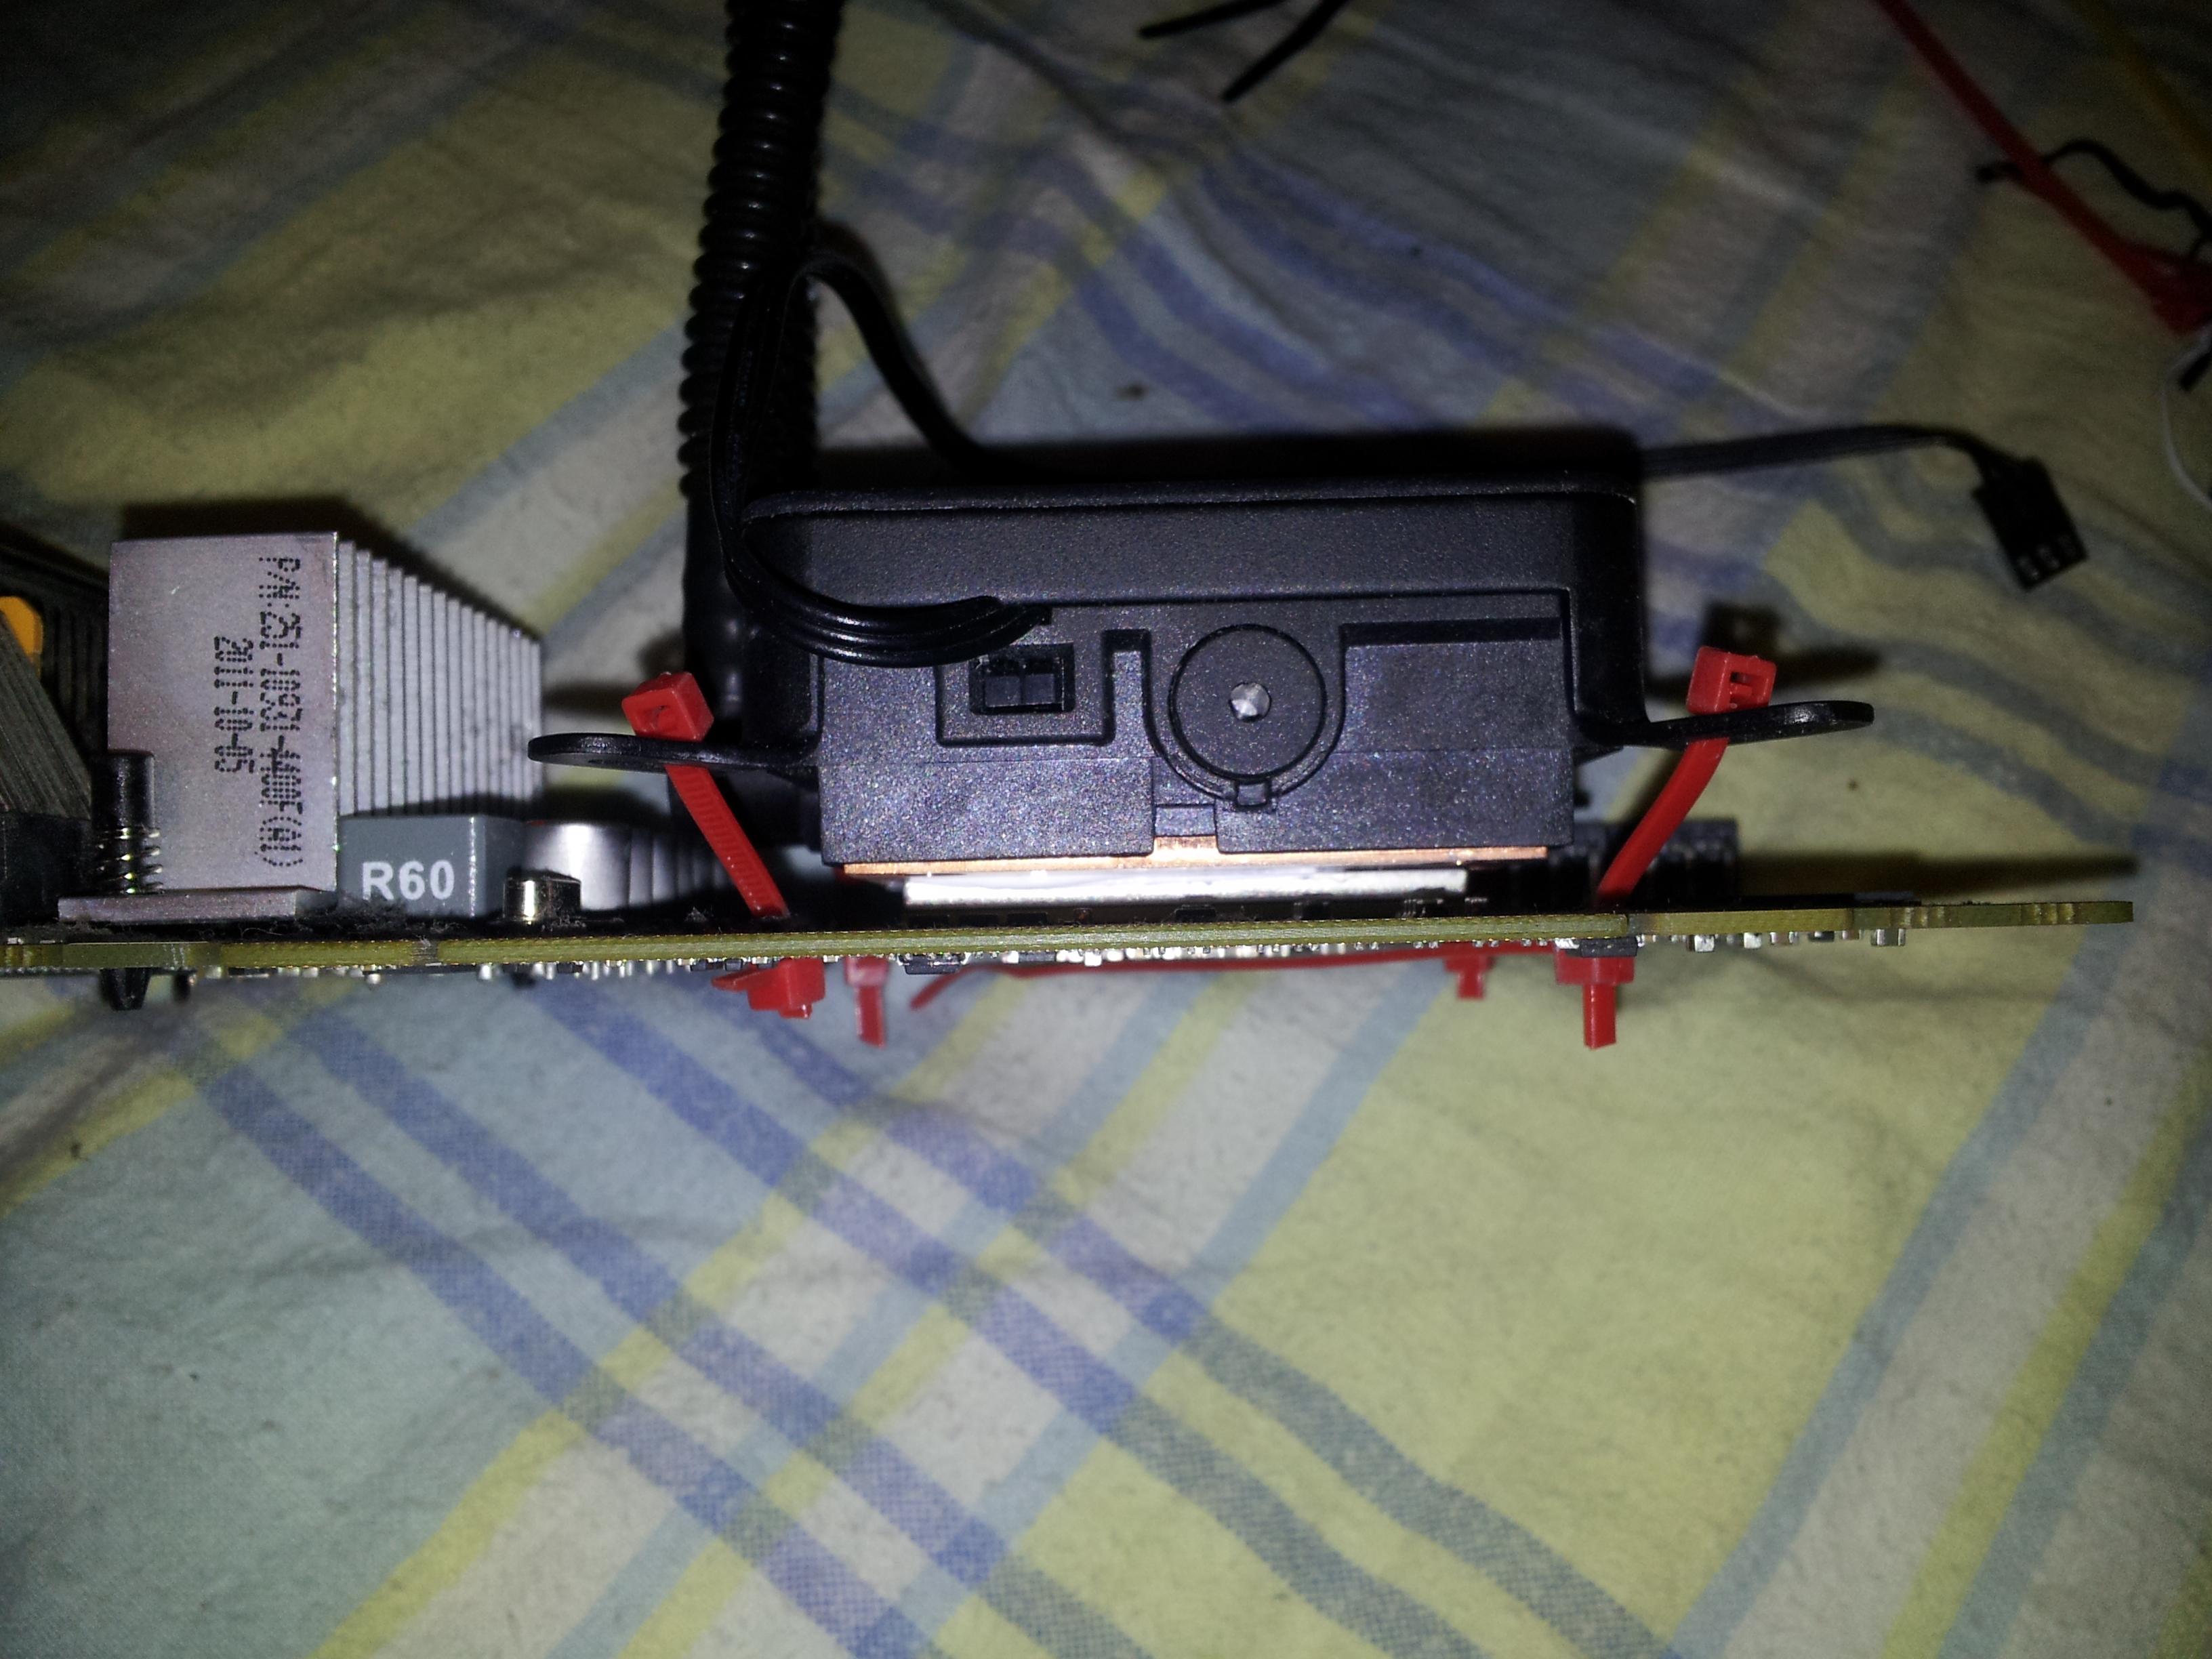 done!  gtx650 with the h60